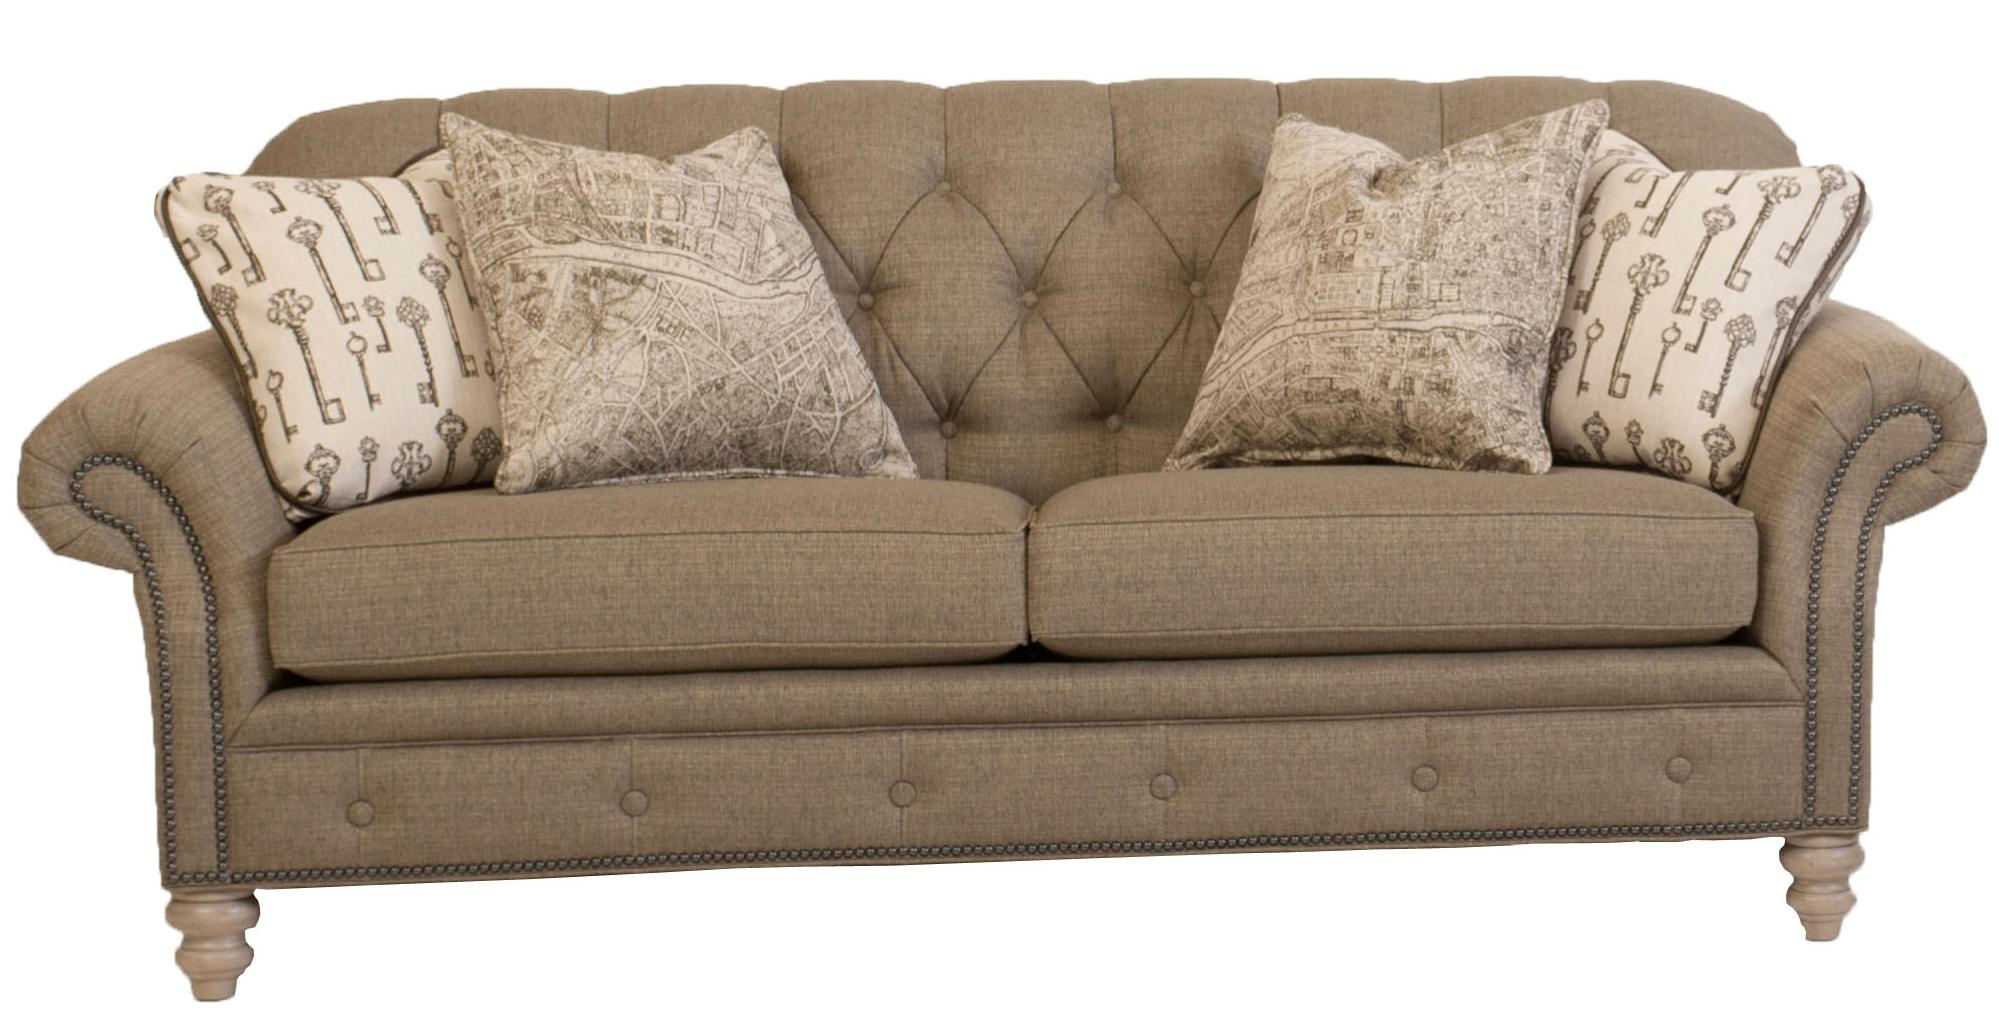 396 Sofa by Smith Brothers at Rooms for Less